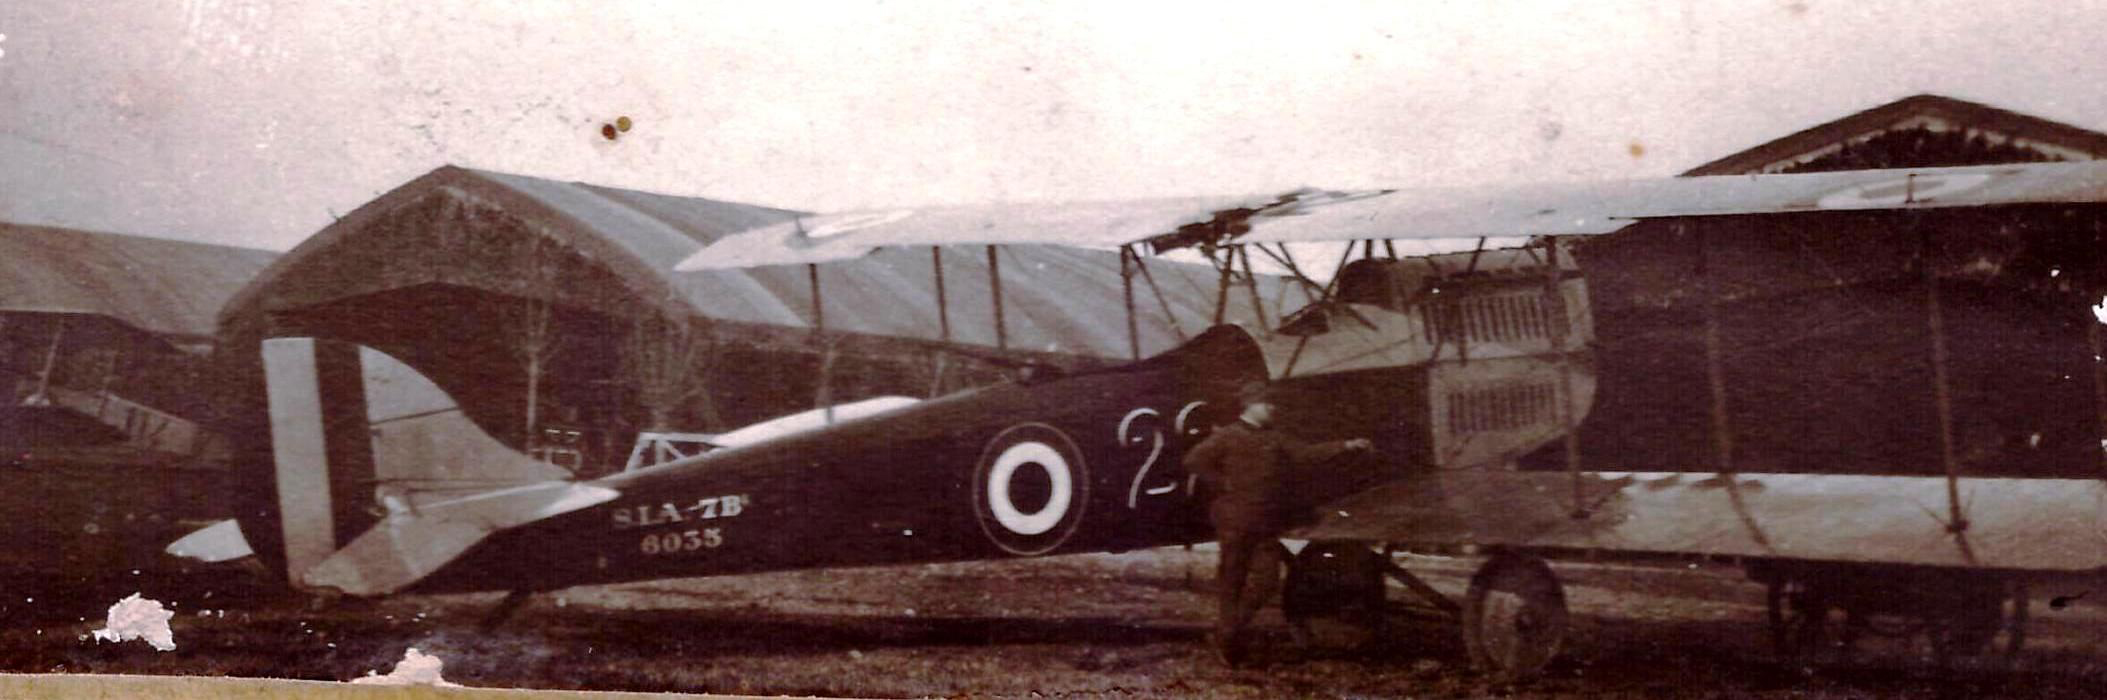 A little-known postscript to the Istrana raid is that an SIA 7B, newly delivered to the 22a Squadriglia, was piloted by Sergente Alfio Lepore with Soldato Ercole Biemmi, a worker and rigger for the SIA company attached to the unit who was in the observer's pit, gave belated, vain chase to the retiring Germans. (ROBERTO GENTILLI)